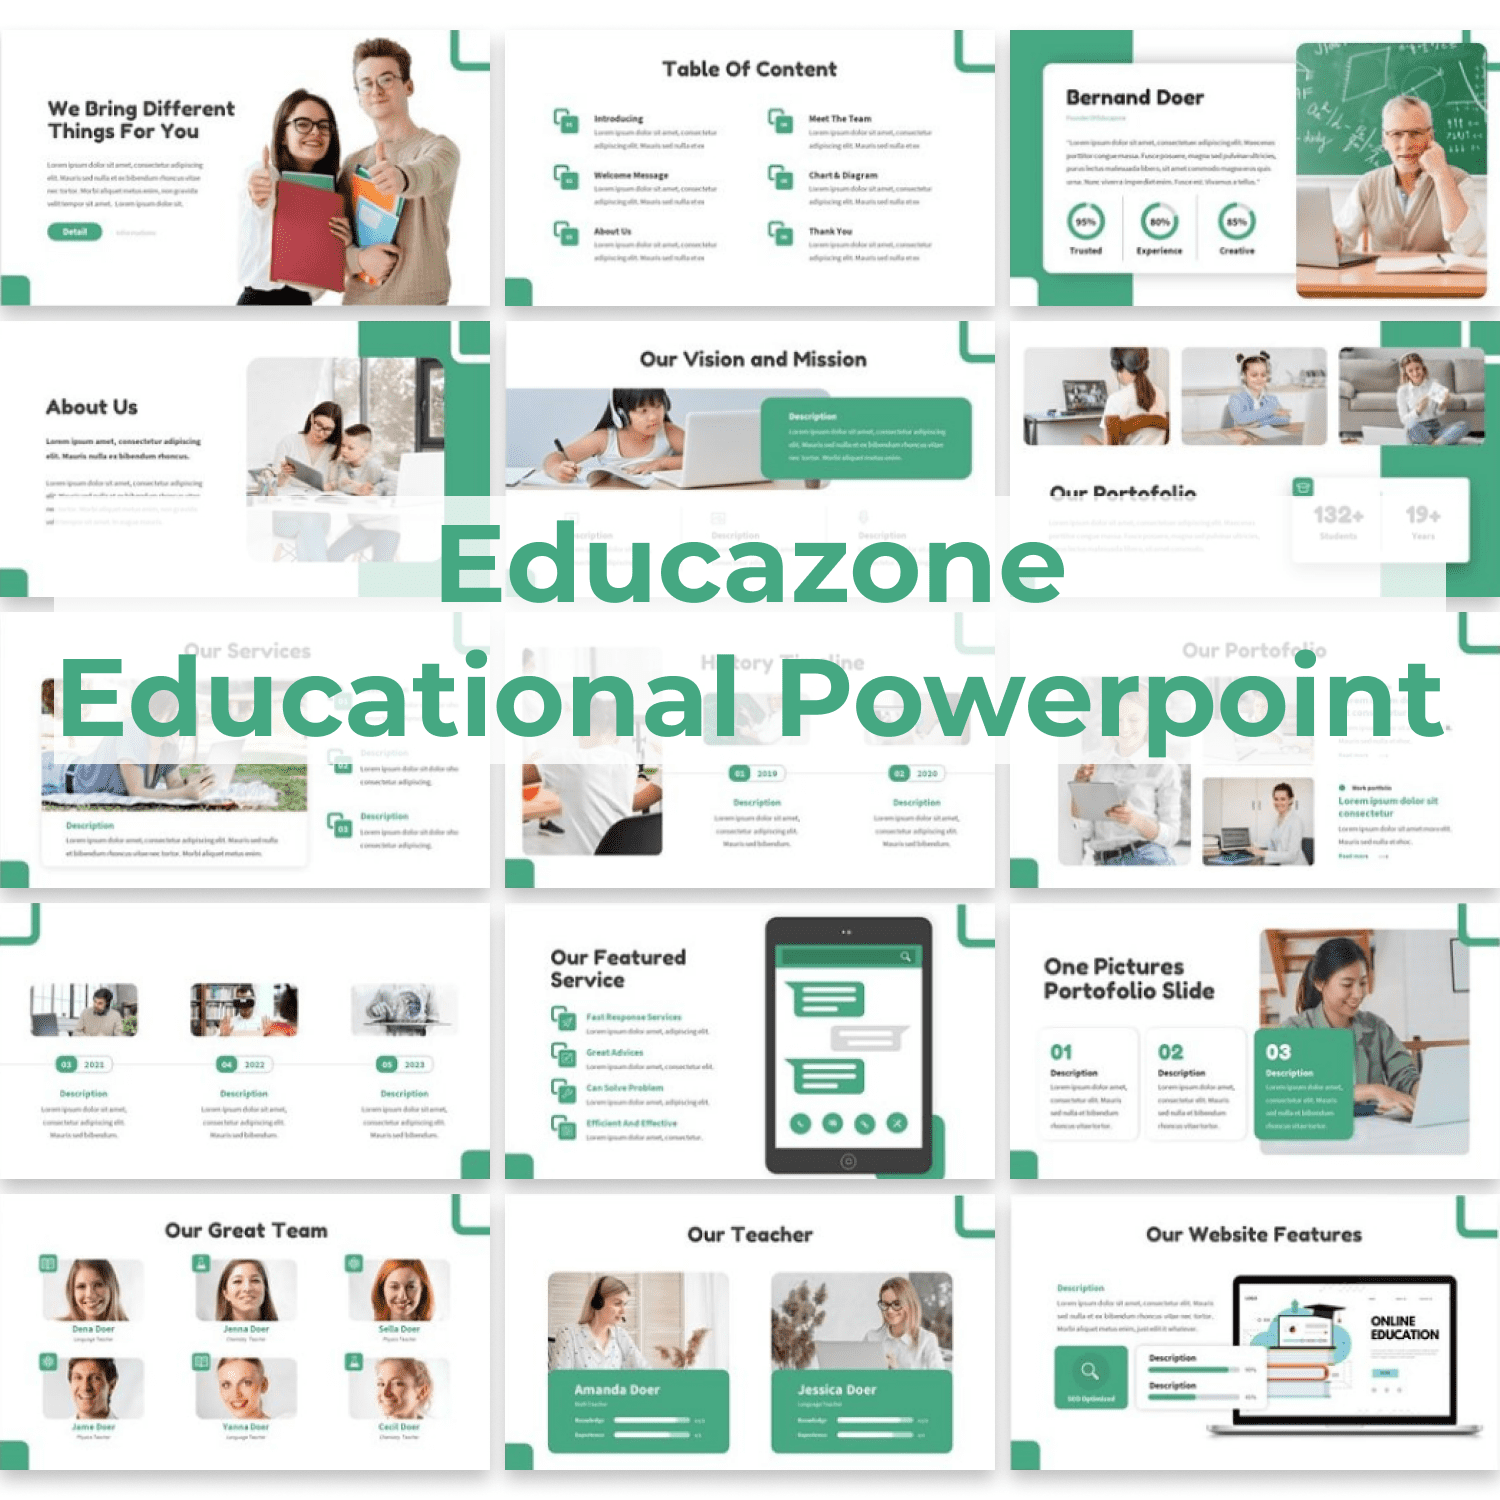 Educazone - Educational Powerpoint main cover.